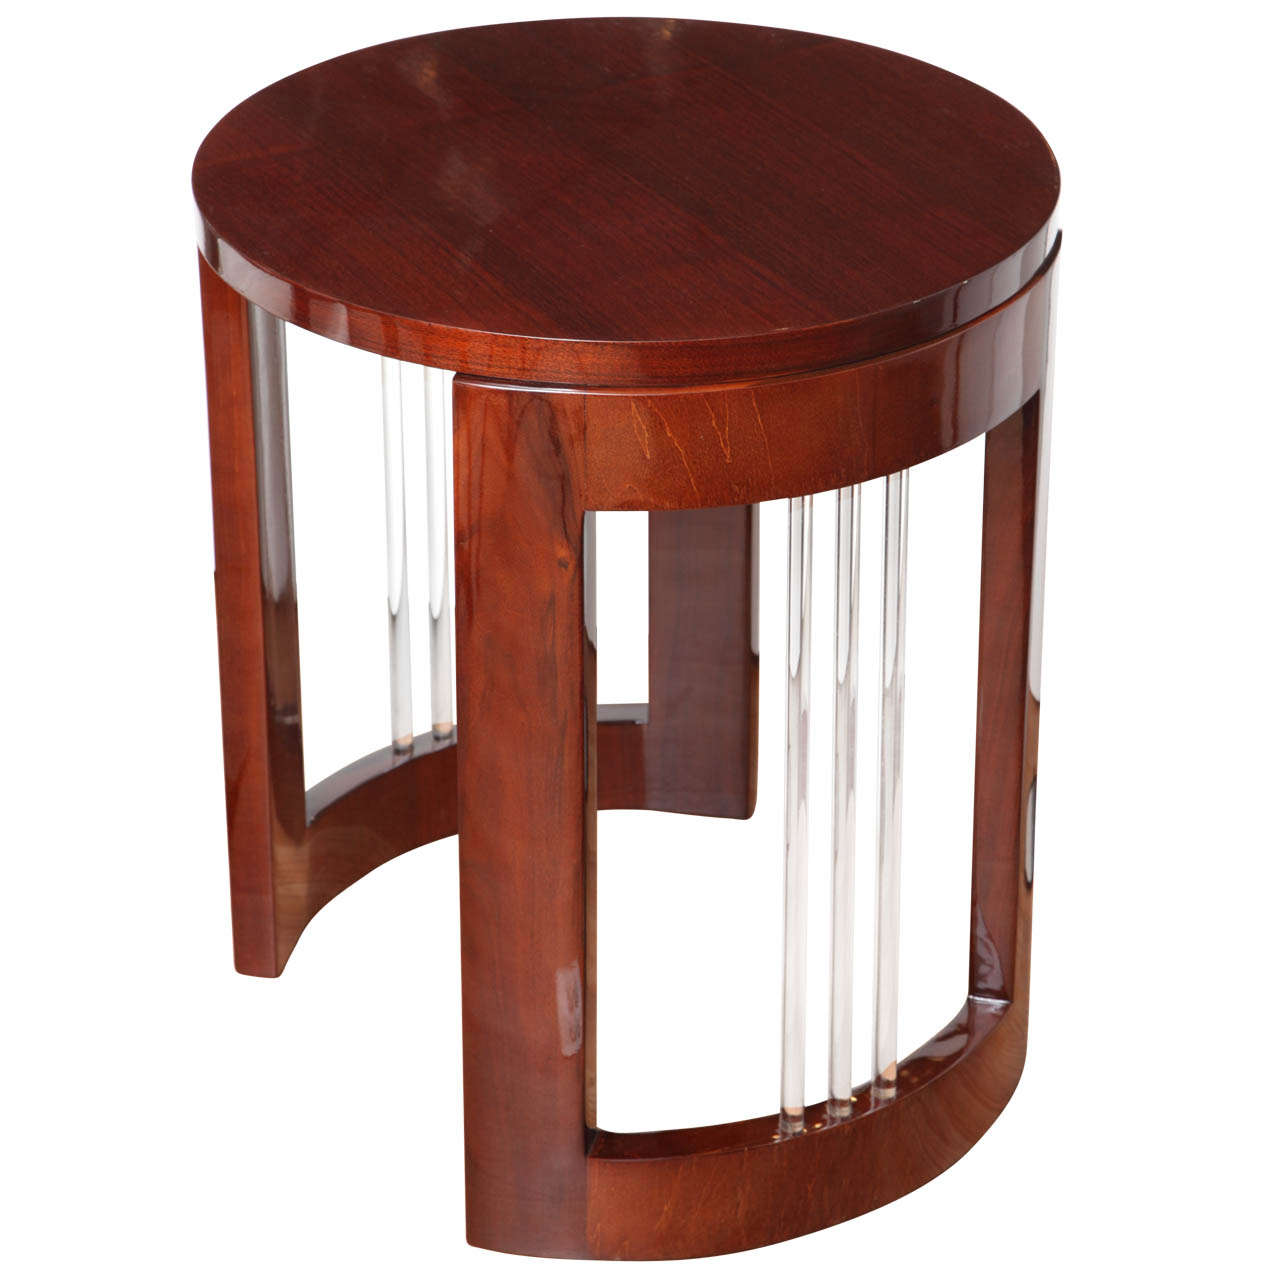 Machine Age Art Deco Round Glass Rod Lamp Table At 1stdibs